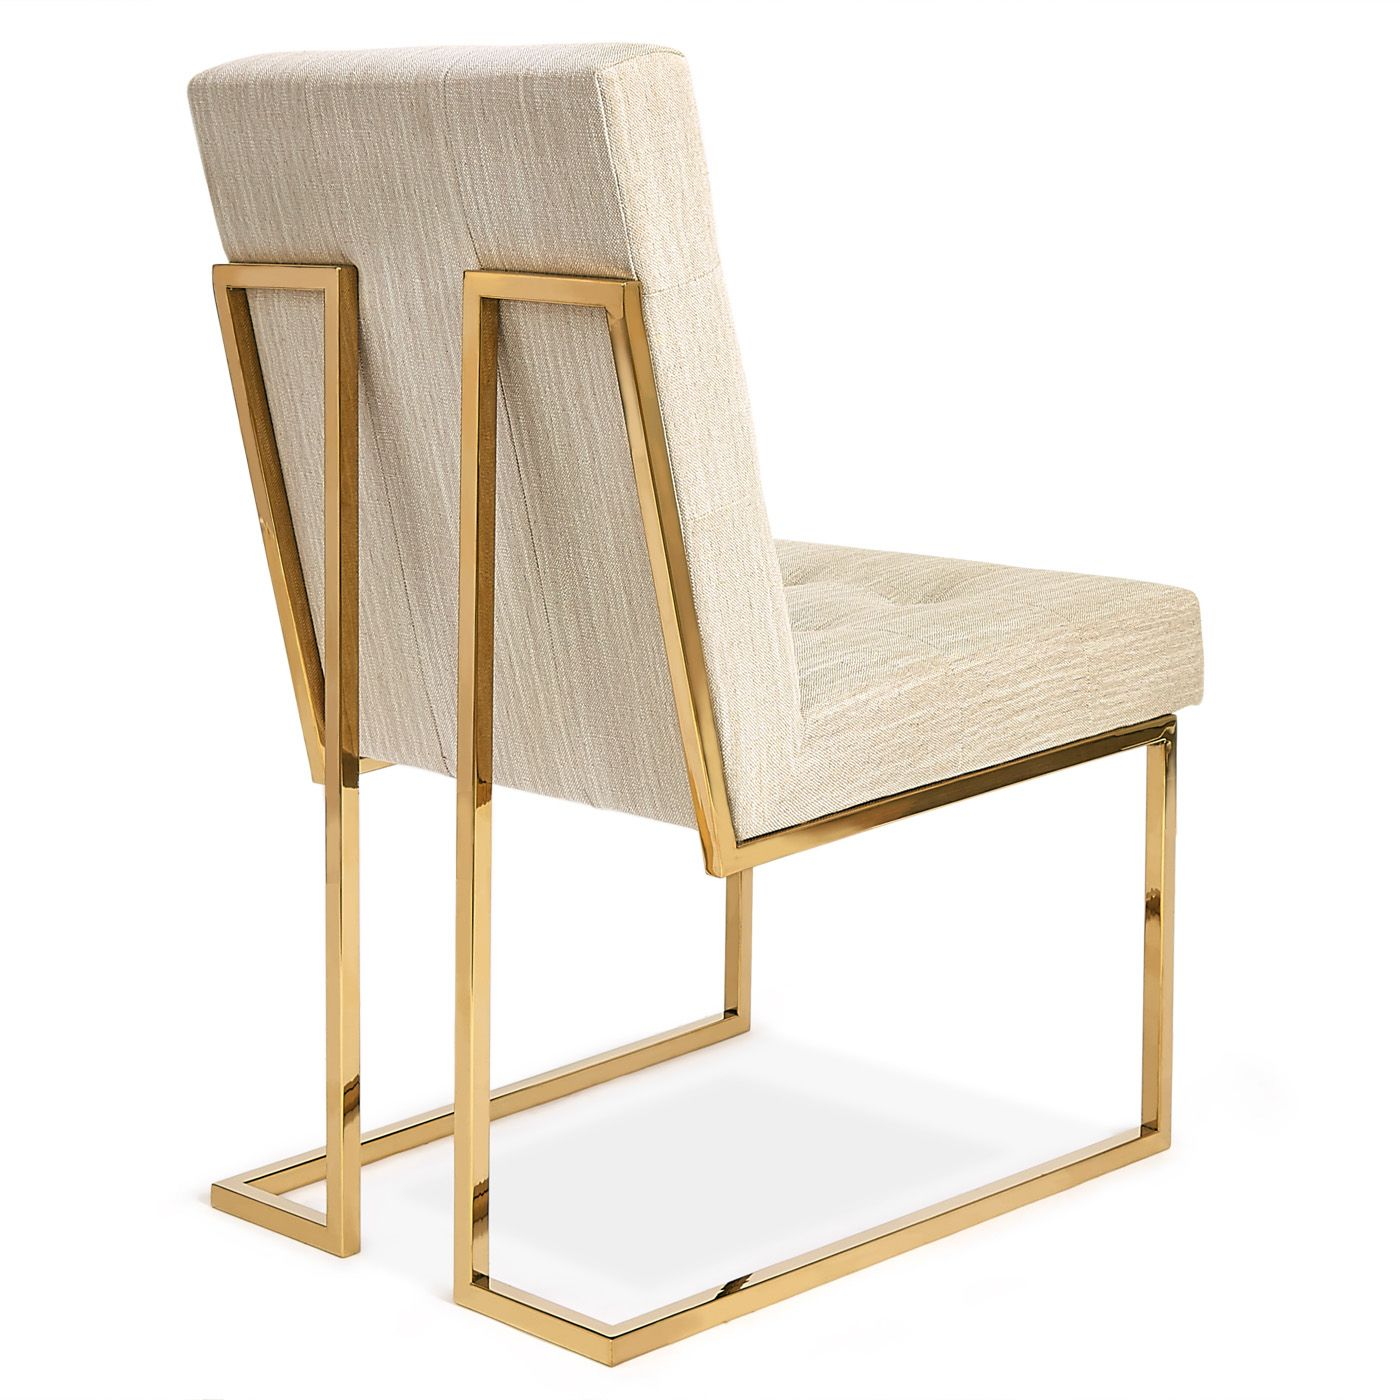 jonathan adler chair french antique chairs goldfinger dining living in style